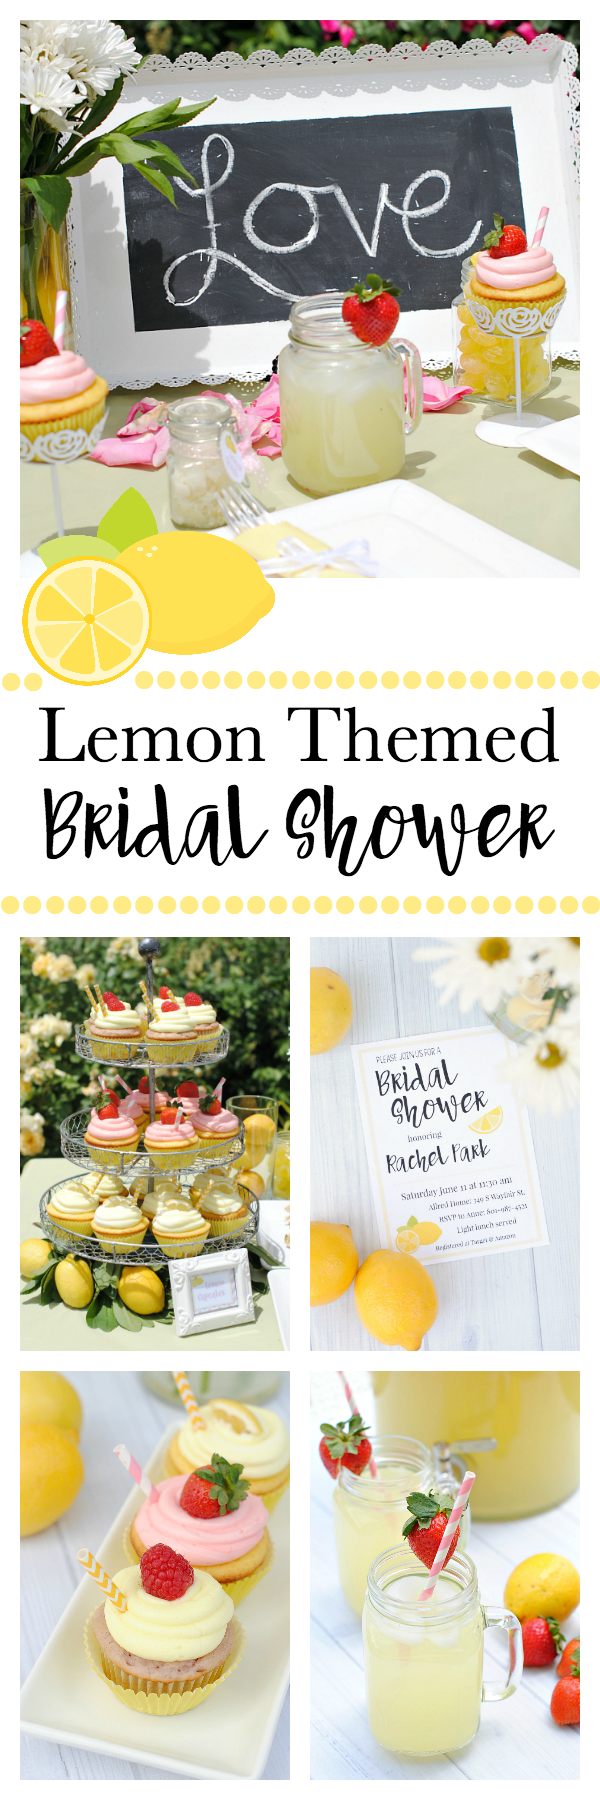 Fun Lemon Themed Summer Bridal Shower Theme